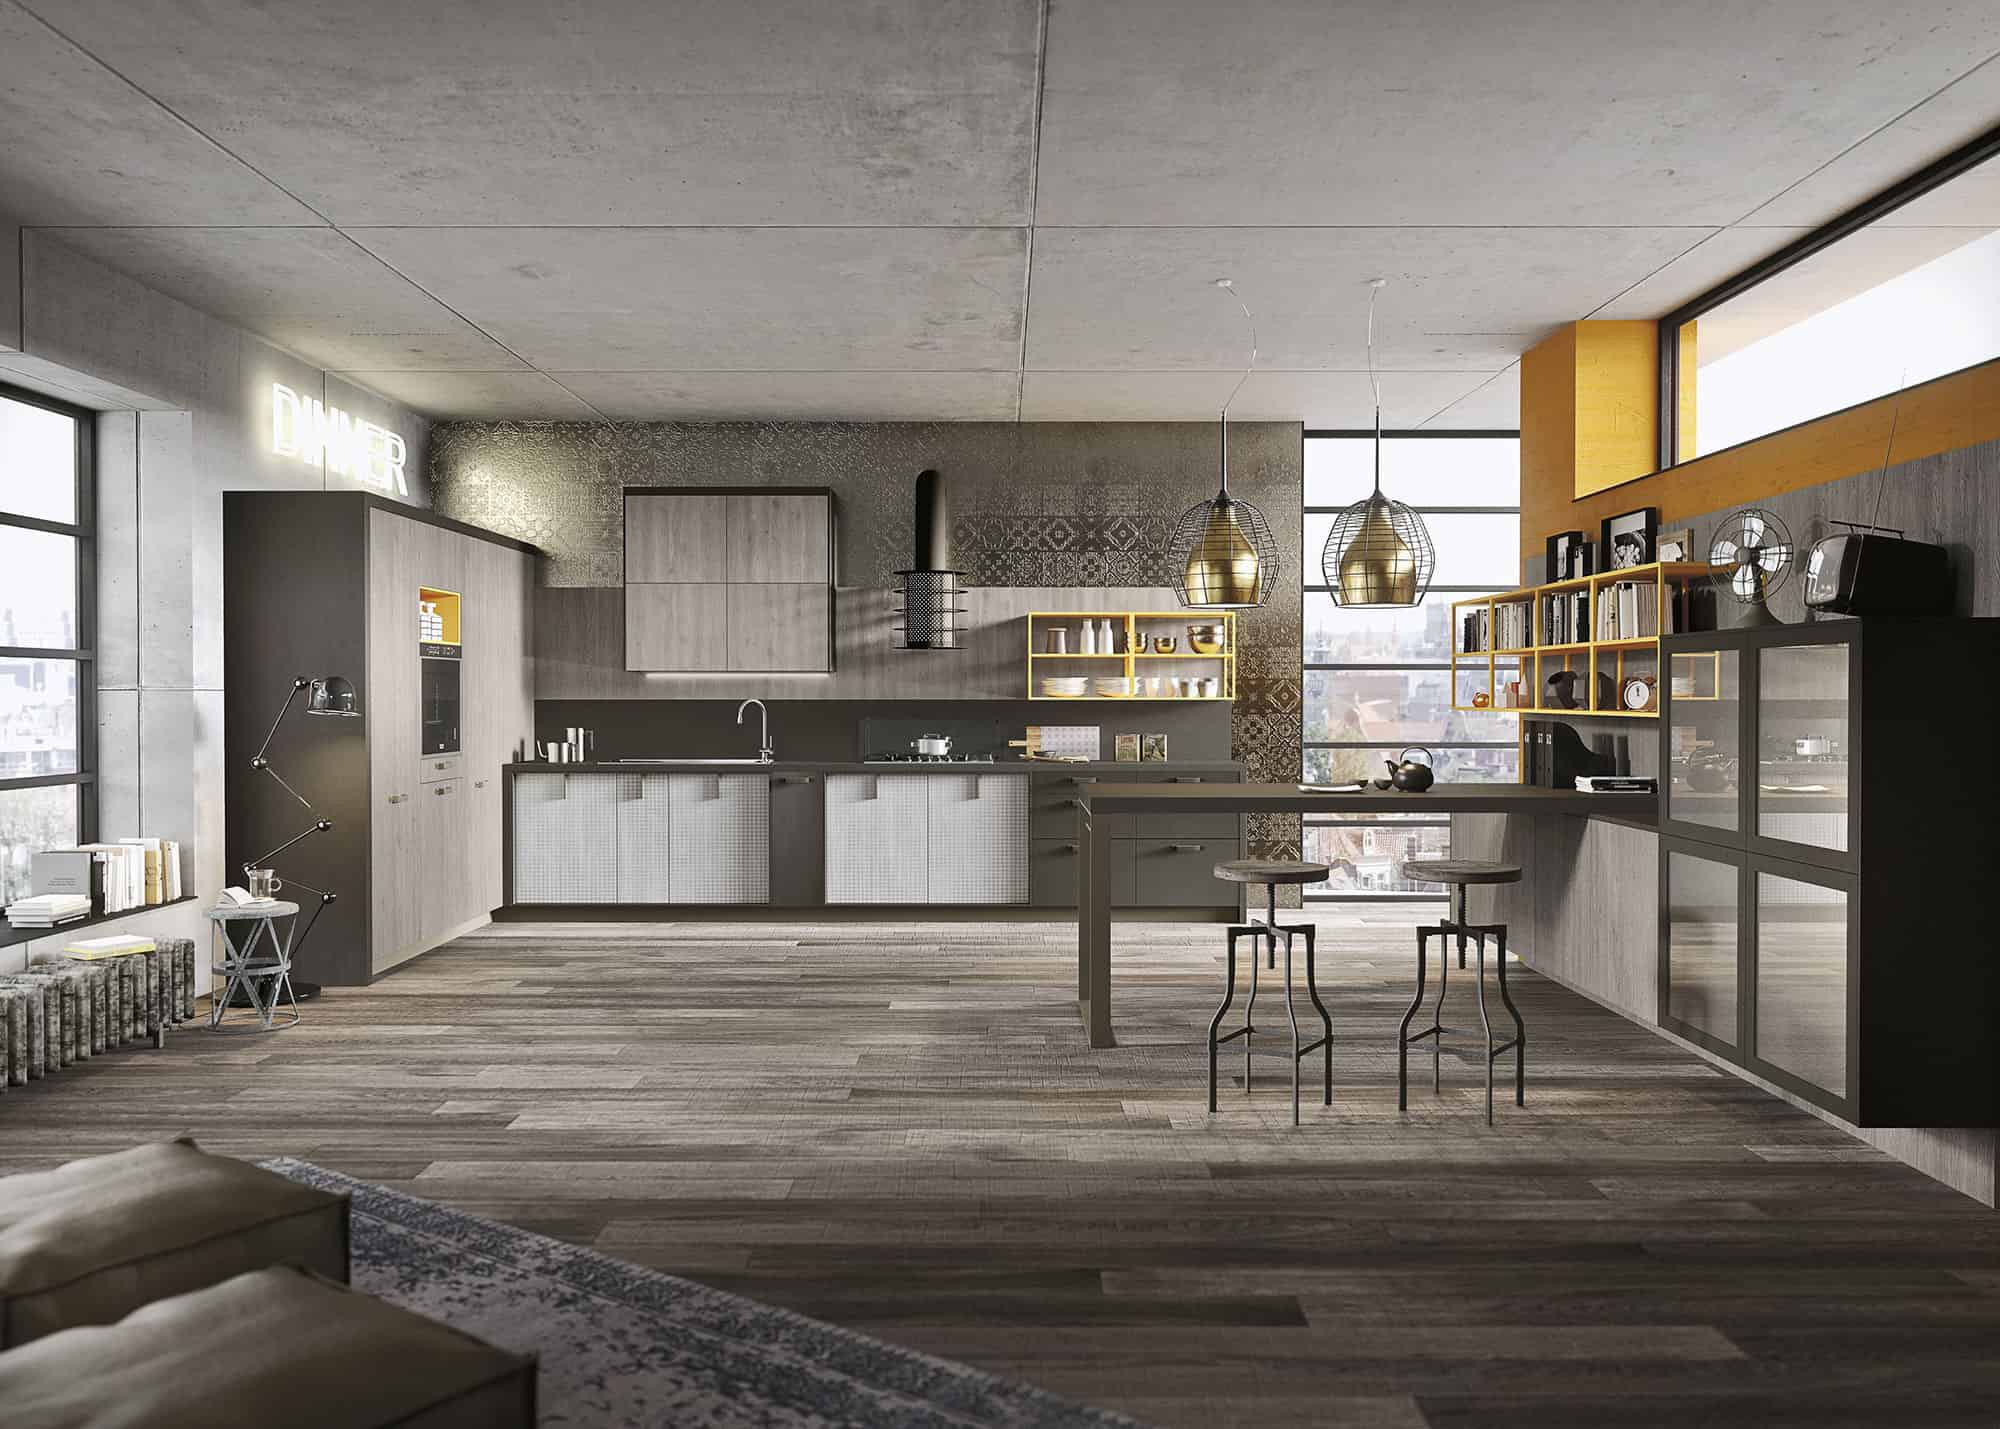 This Urban Loft Kitchen Design (above) Uses The Same Elements As The One  With The Modern Look But It Features The Weathered Looking U201cFossil Oaku201d  Melamine ...